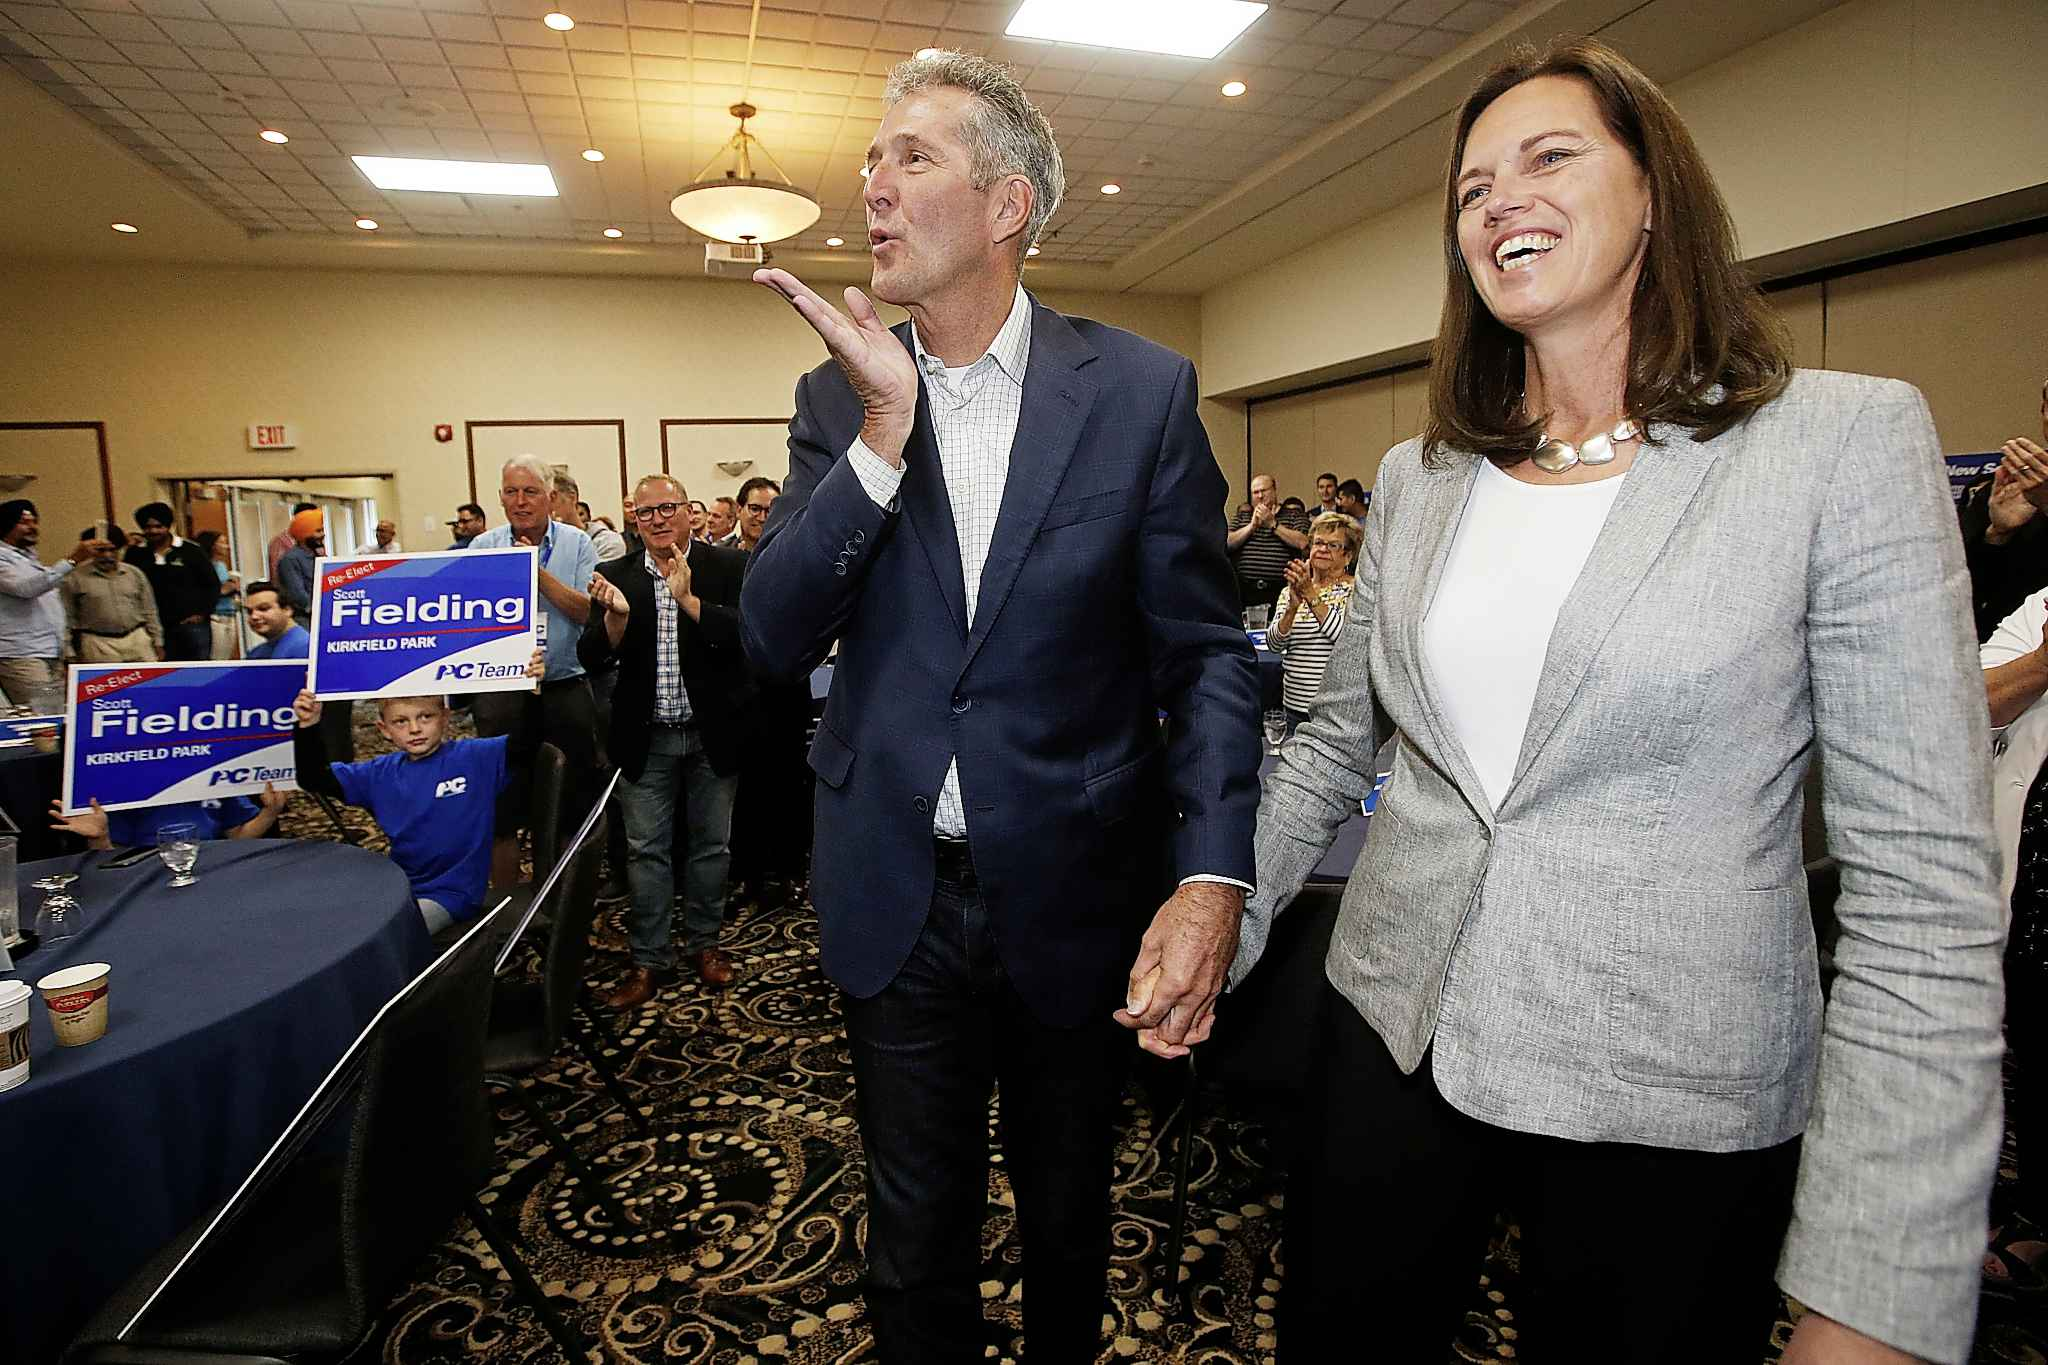 Progressive Conservative Party of Manitoba Leader Brian Pallister with his wife Esther.